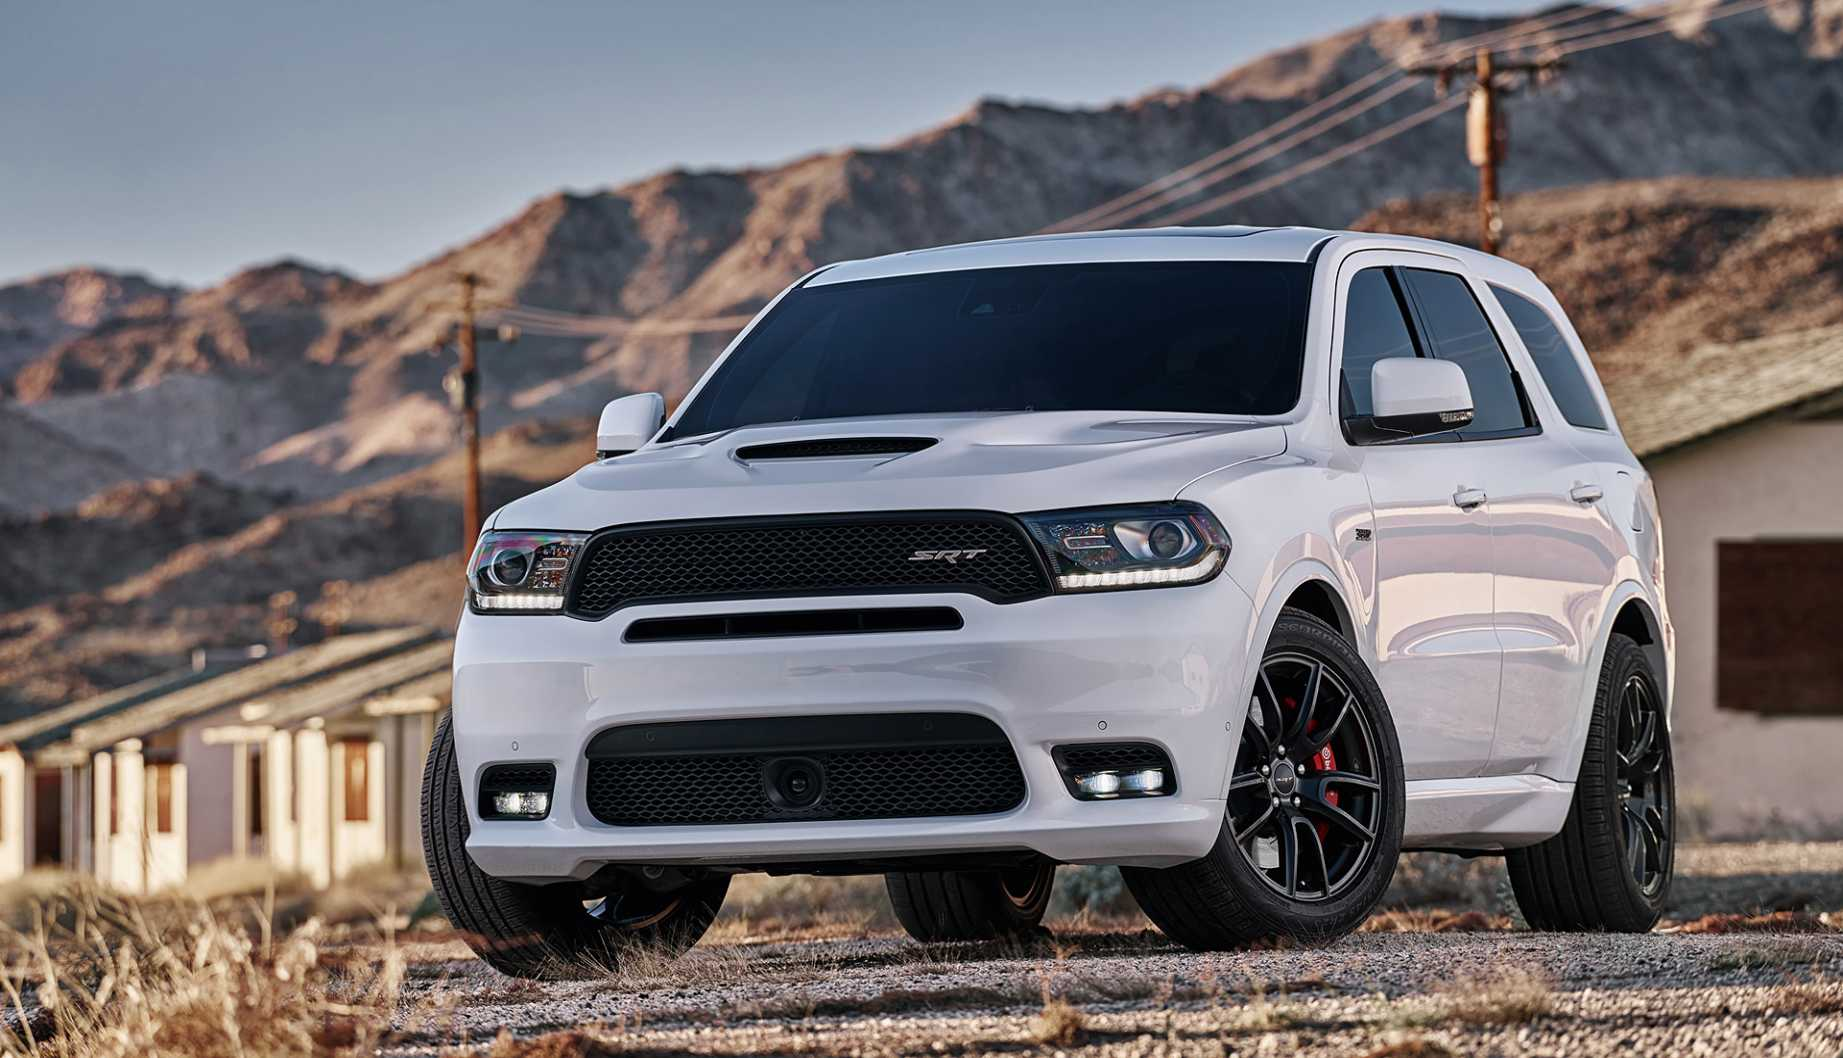 69 The 2020 Dodge Durango Srt Redesign